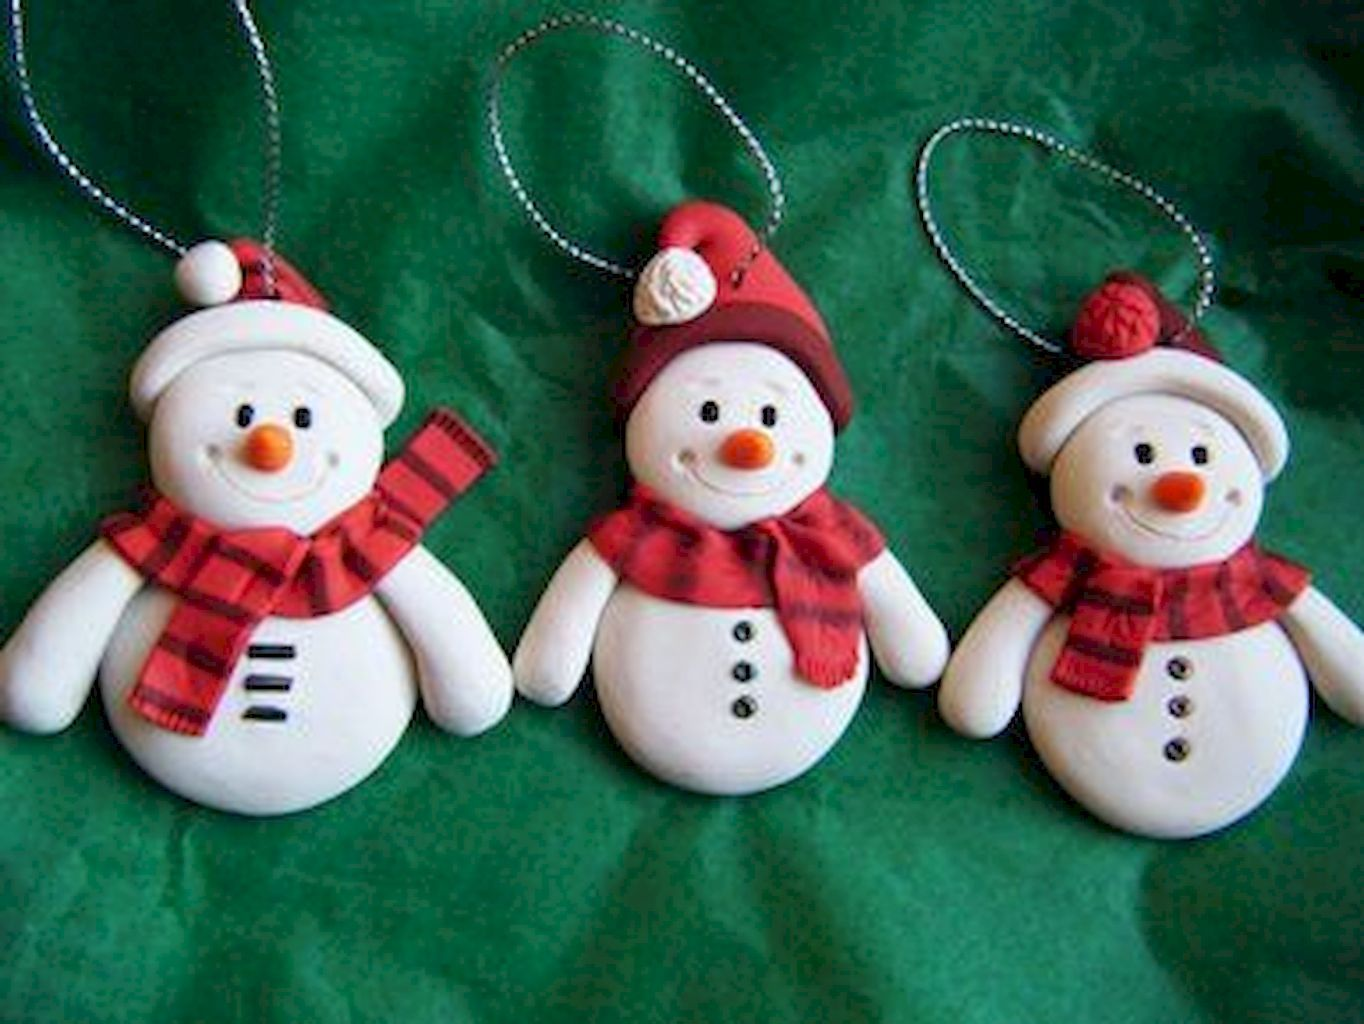 Nice 50 Easy To Try Diy Polymer Clay Christmas Design Ideas Https Roomadness Com 201 Polymer Clay Christmas Clay Christmas Decorations Polymer Clay Ornaments